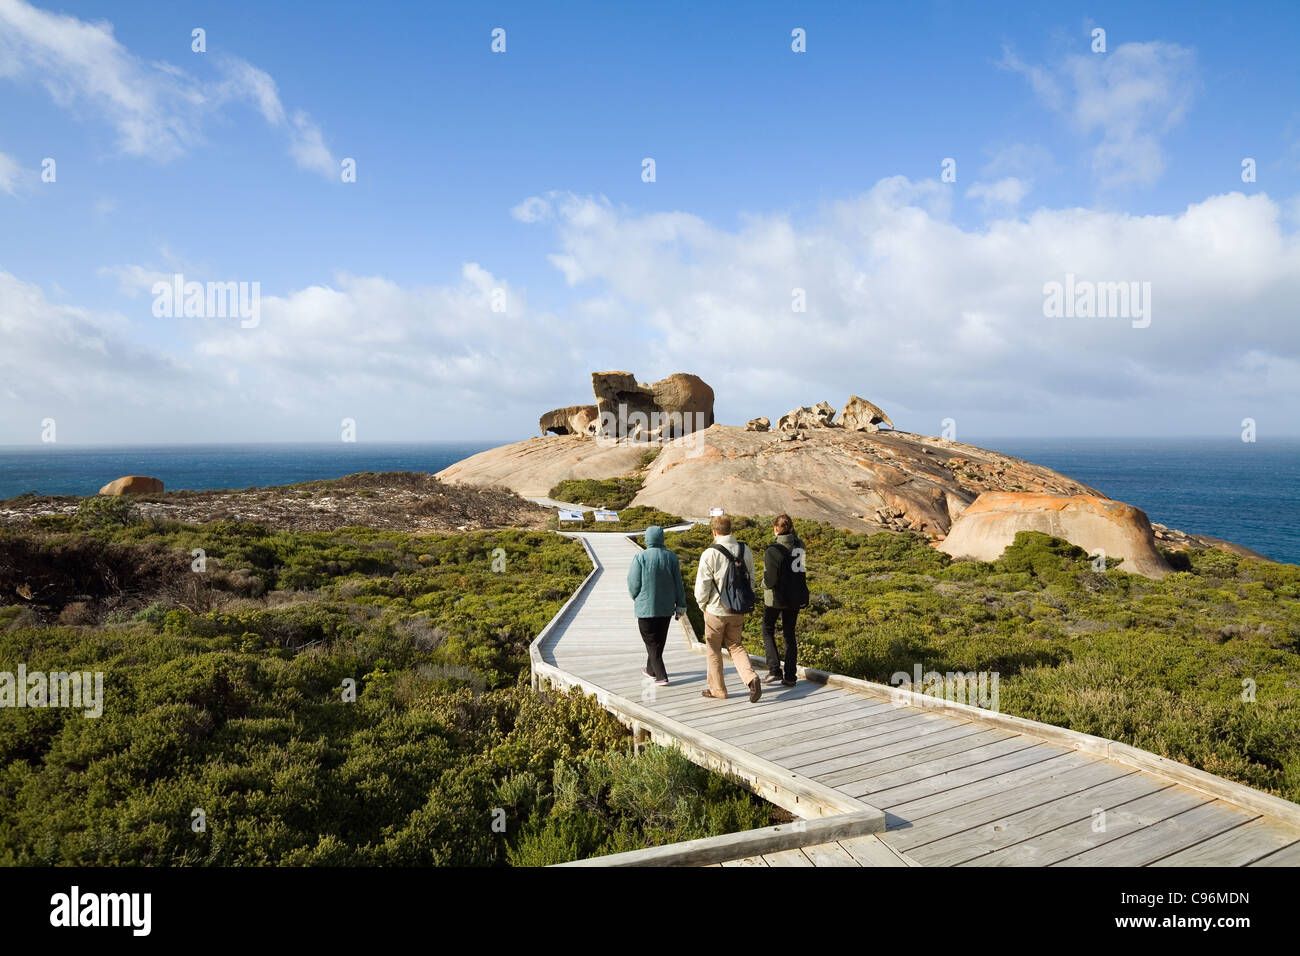 Boardwalk leading to Remarkable Rocks on the south coast of Kangaroo Island, South Australia, Australia - Stock Image